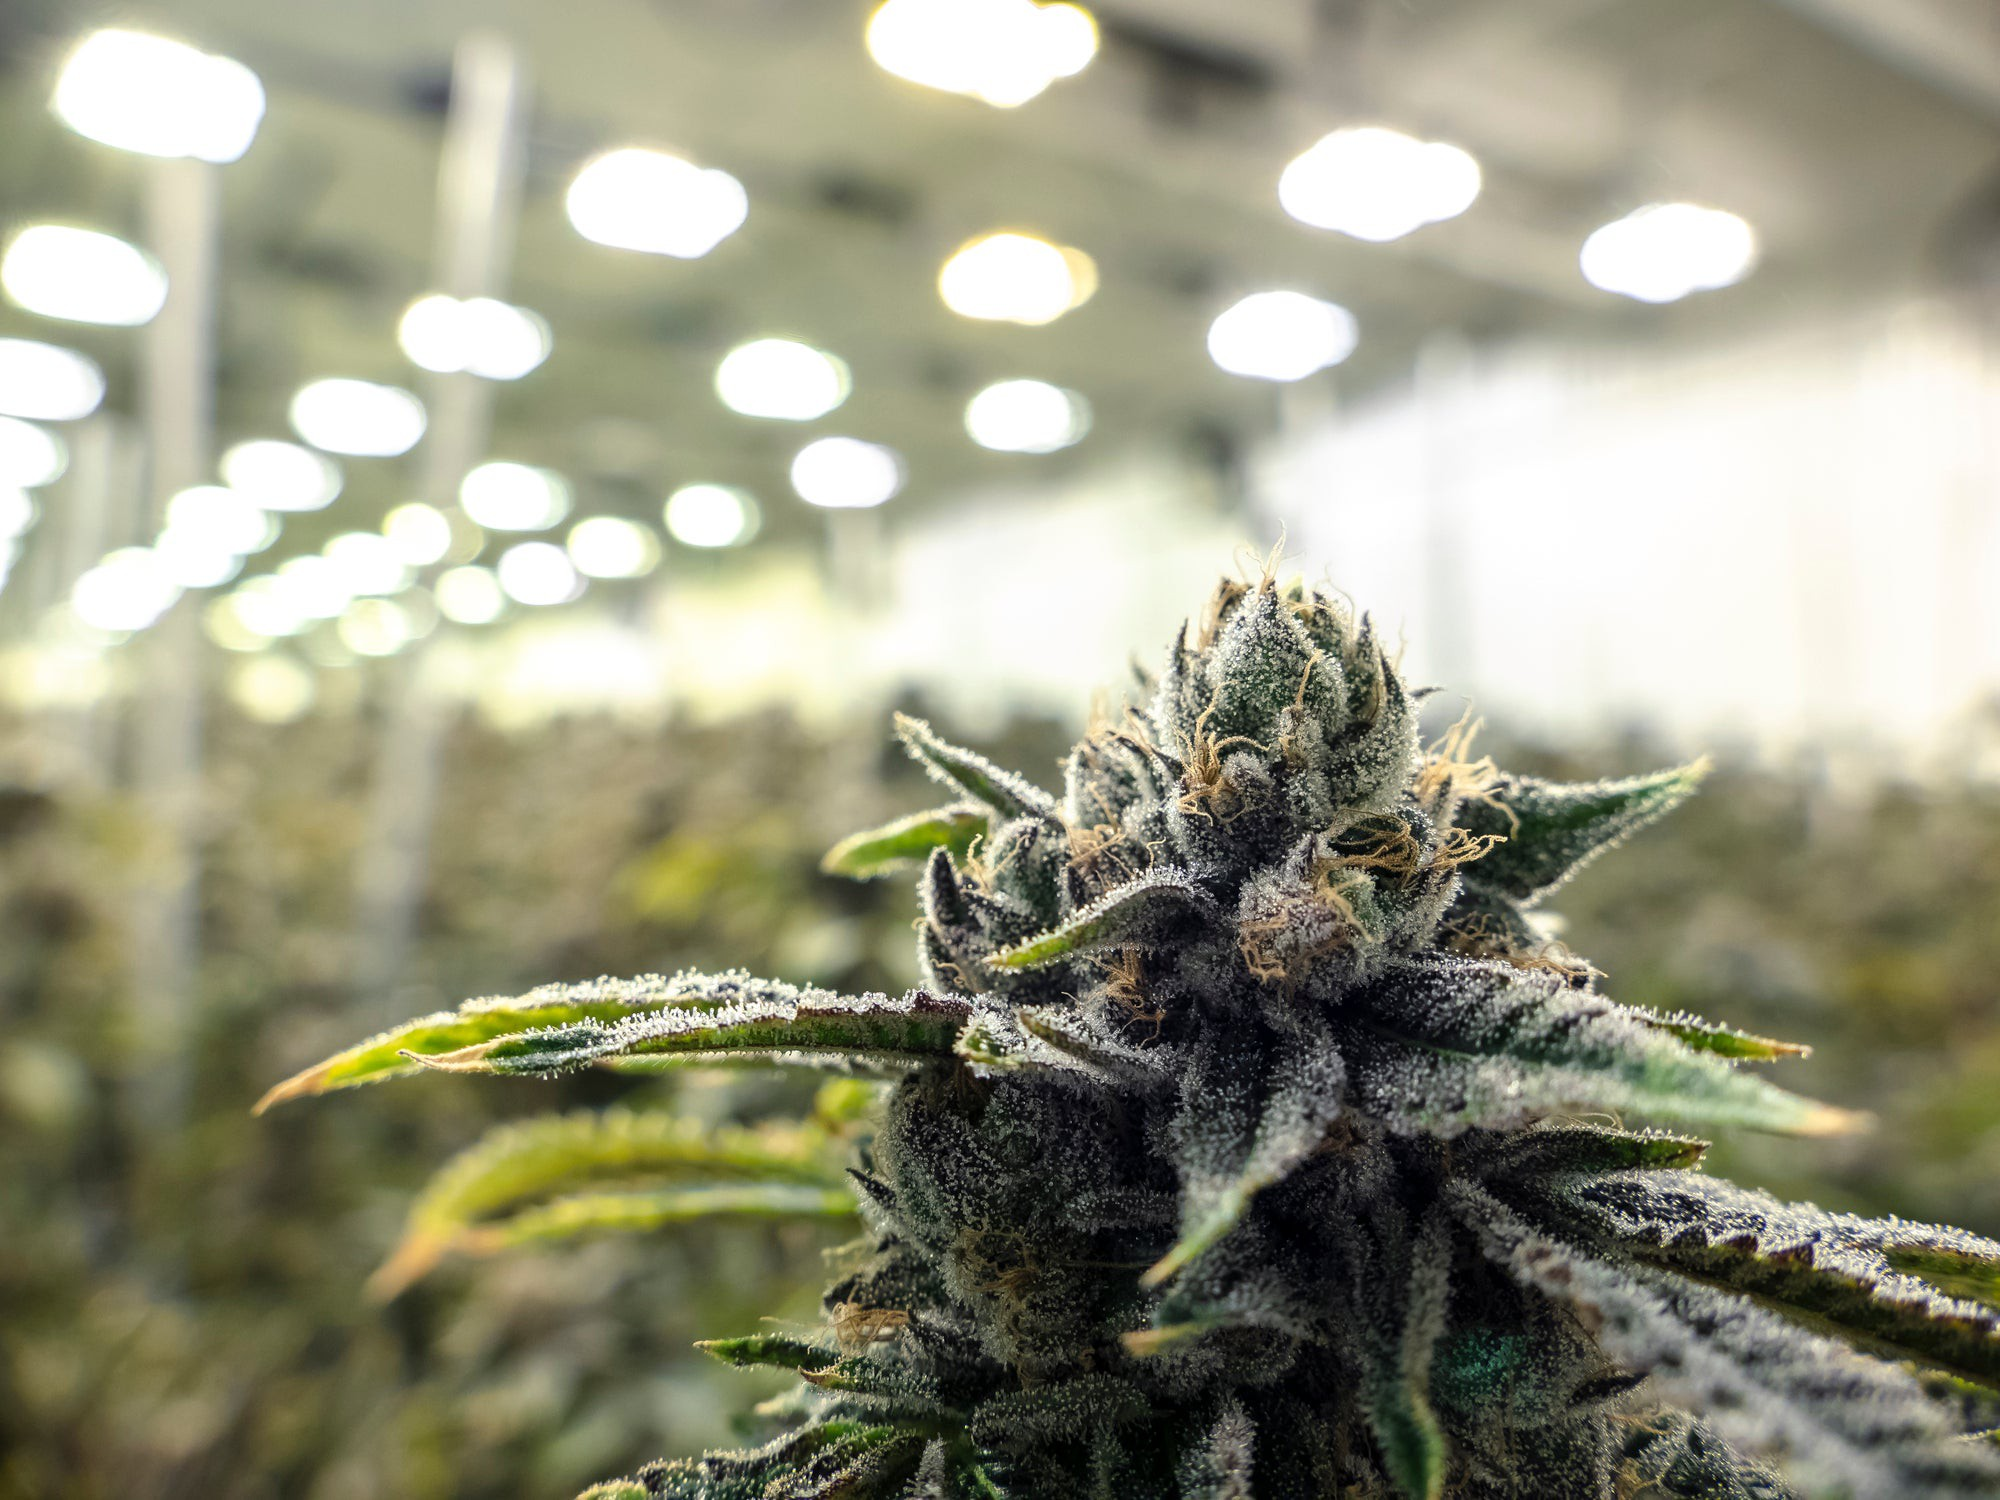 An up-close view of a flowering cannabis plant growing in a large indoor cultivation farm